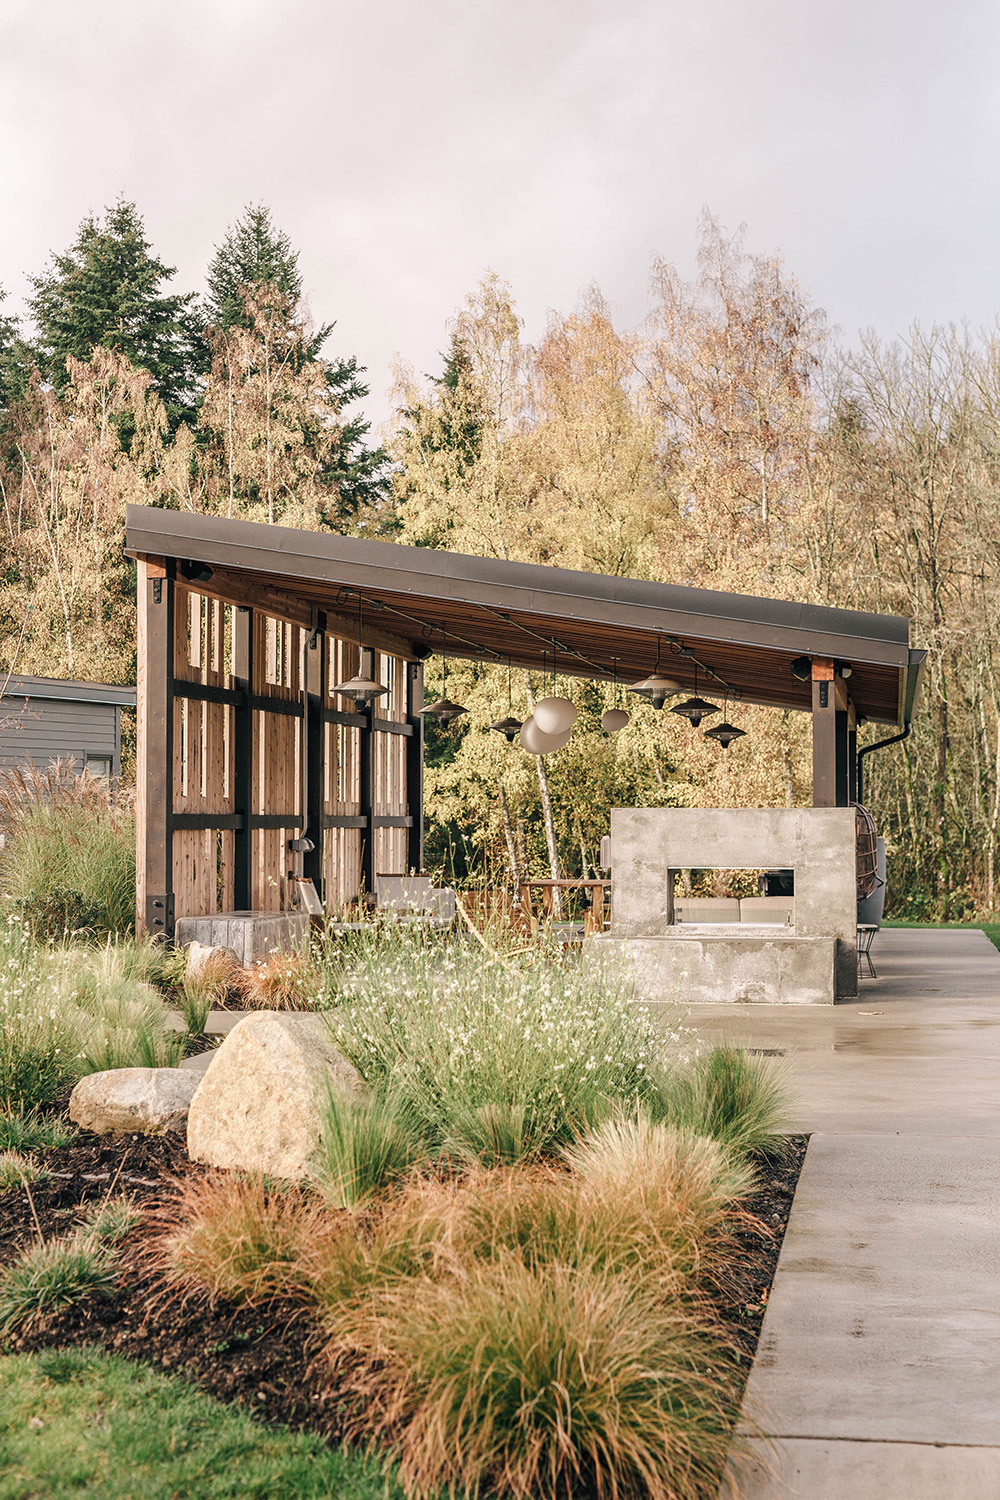 The Lodges on Vashon The Pavilion photo by Danny Owens - Vashon Island Travel Guide | Style and Cheek